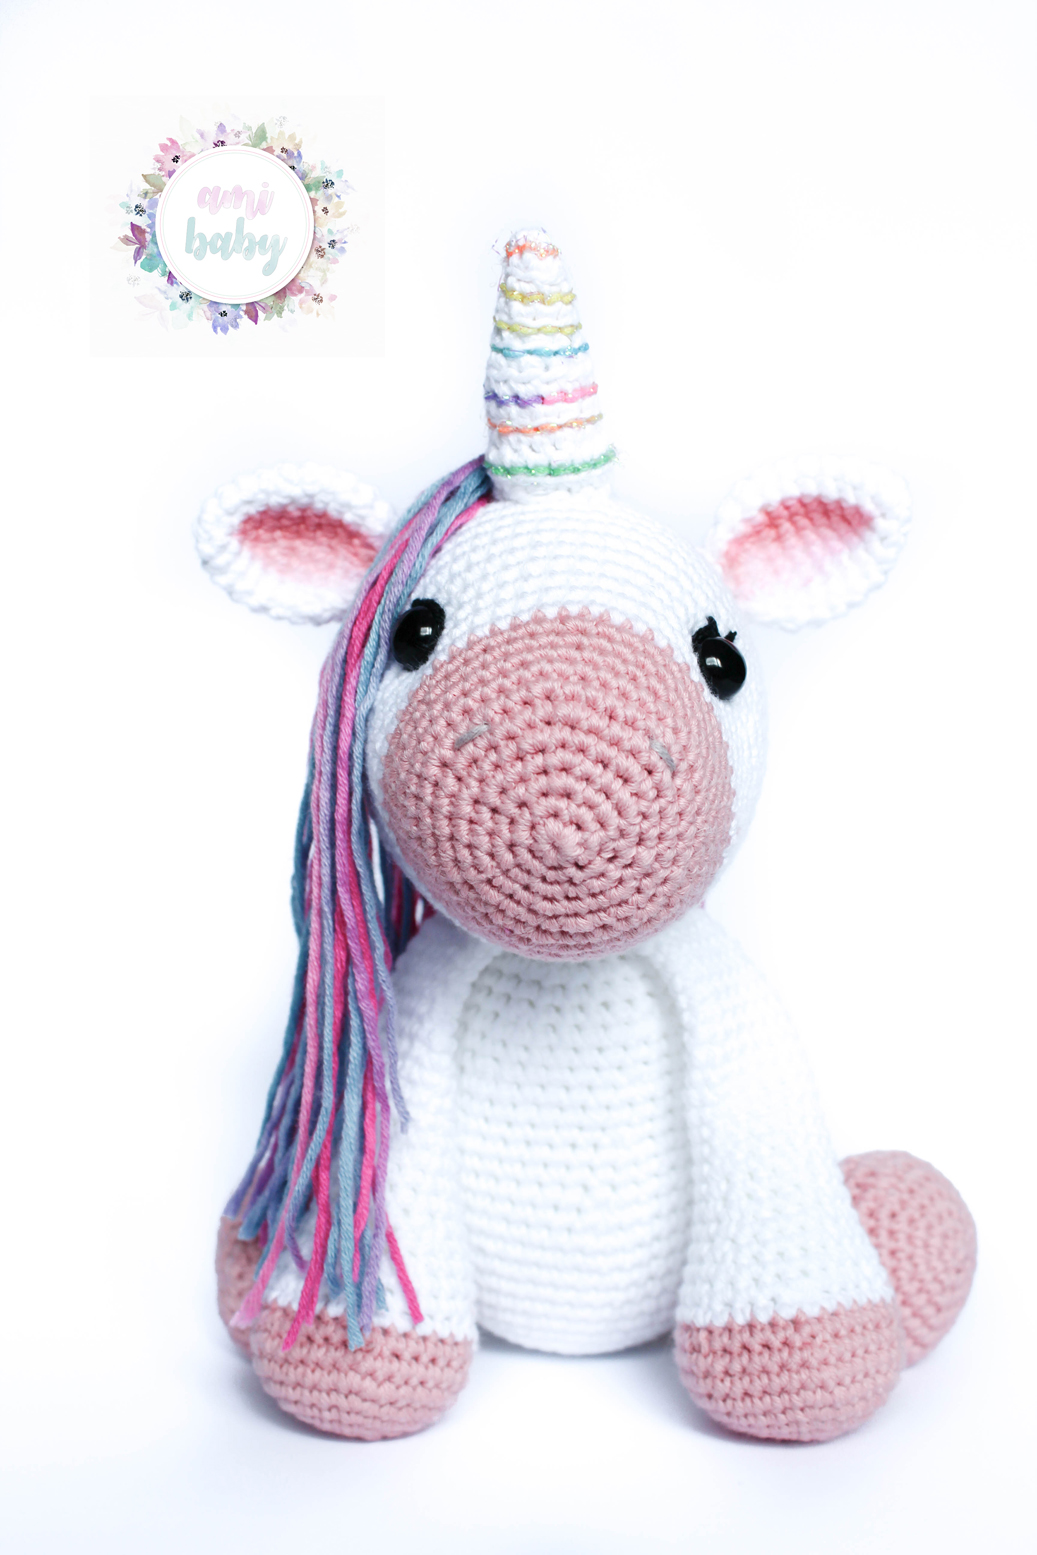 Unicorn Pattern Pinkfoxstitches Patrn Unicornio